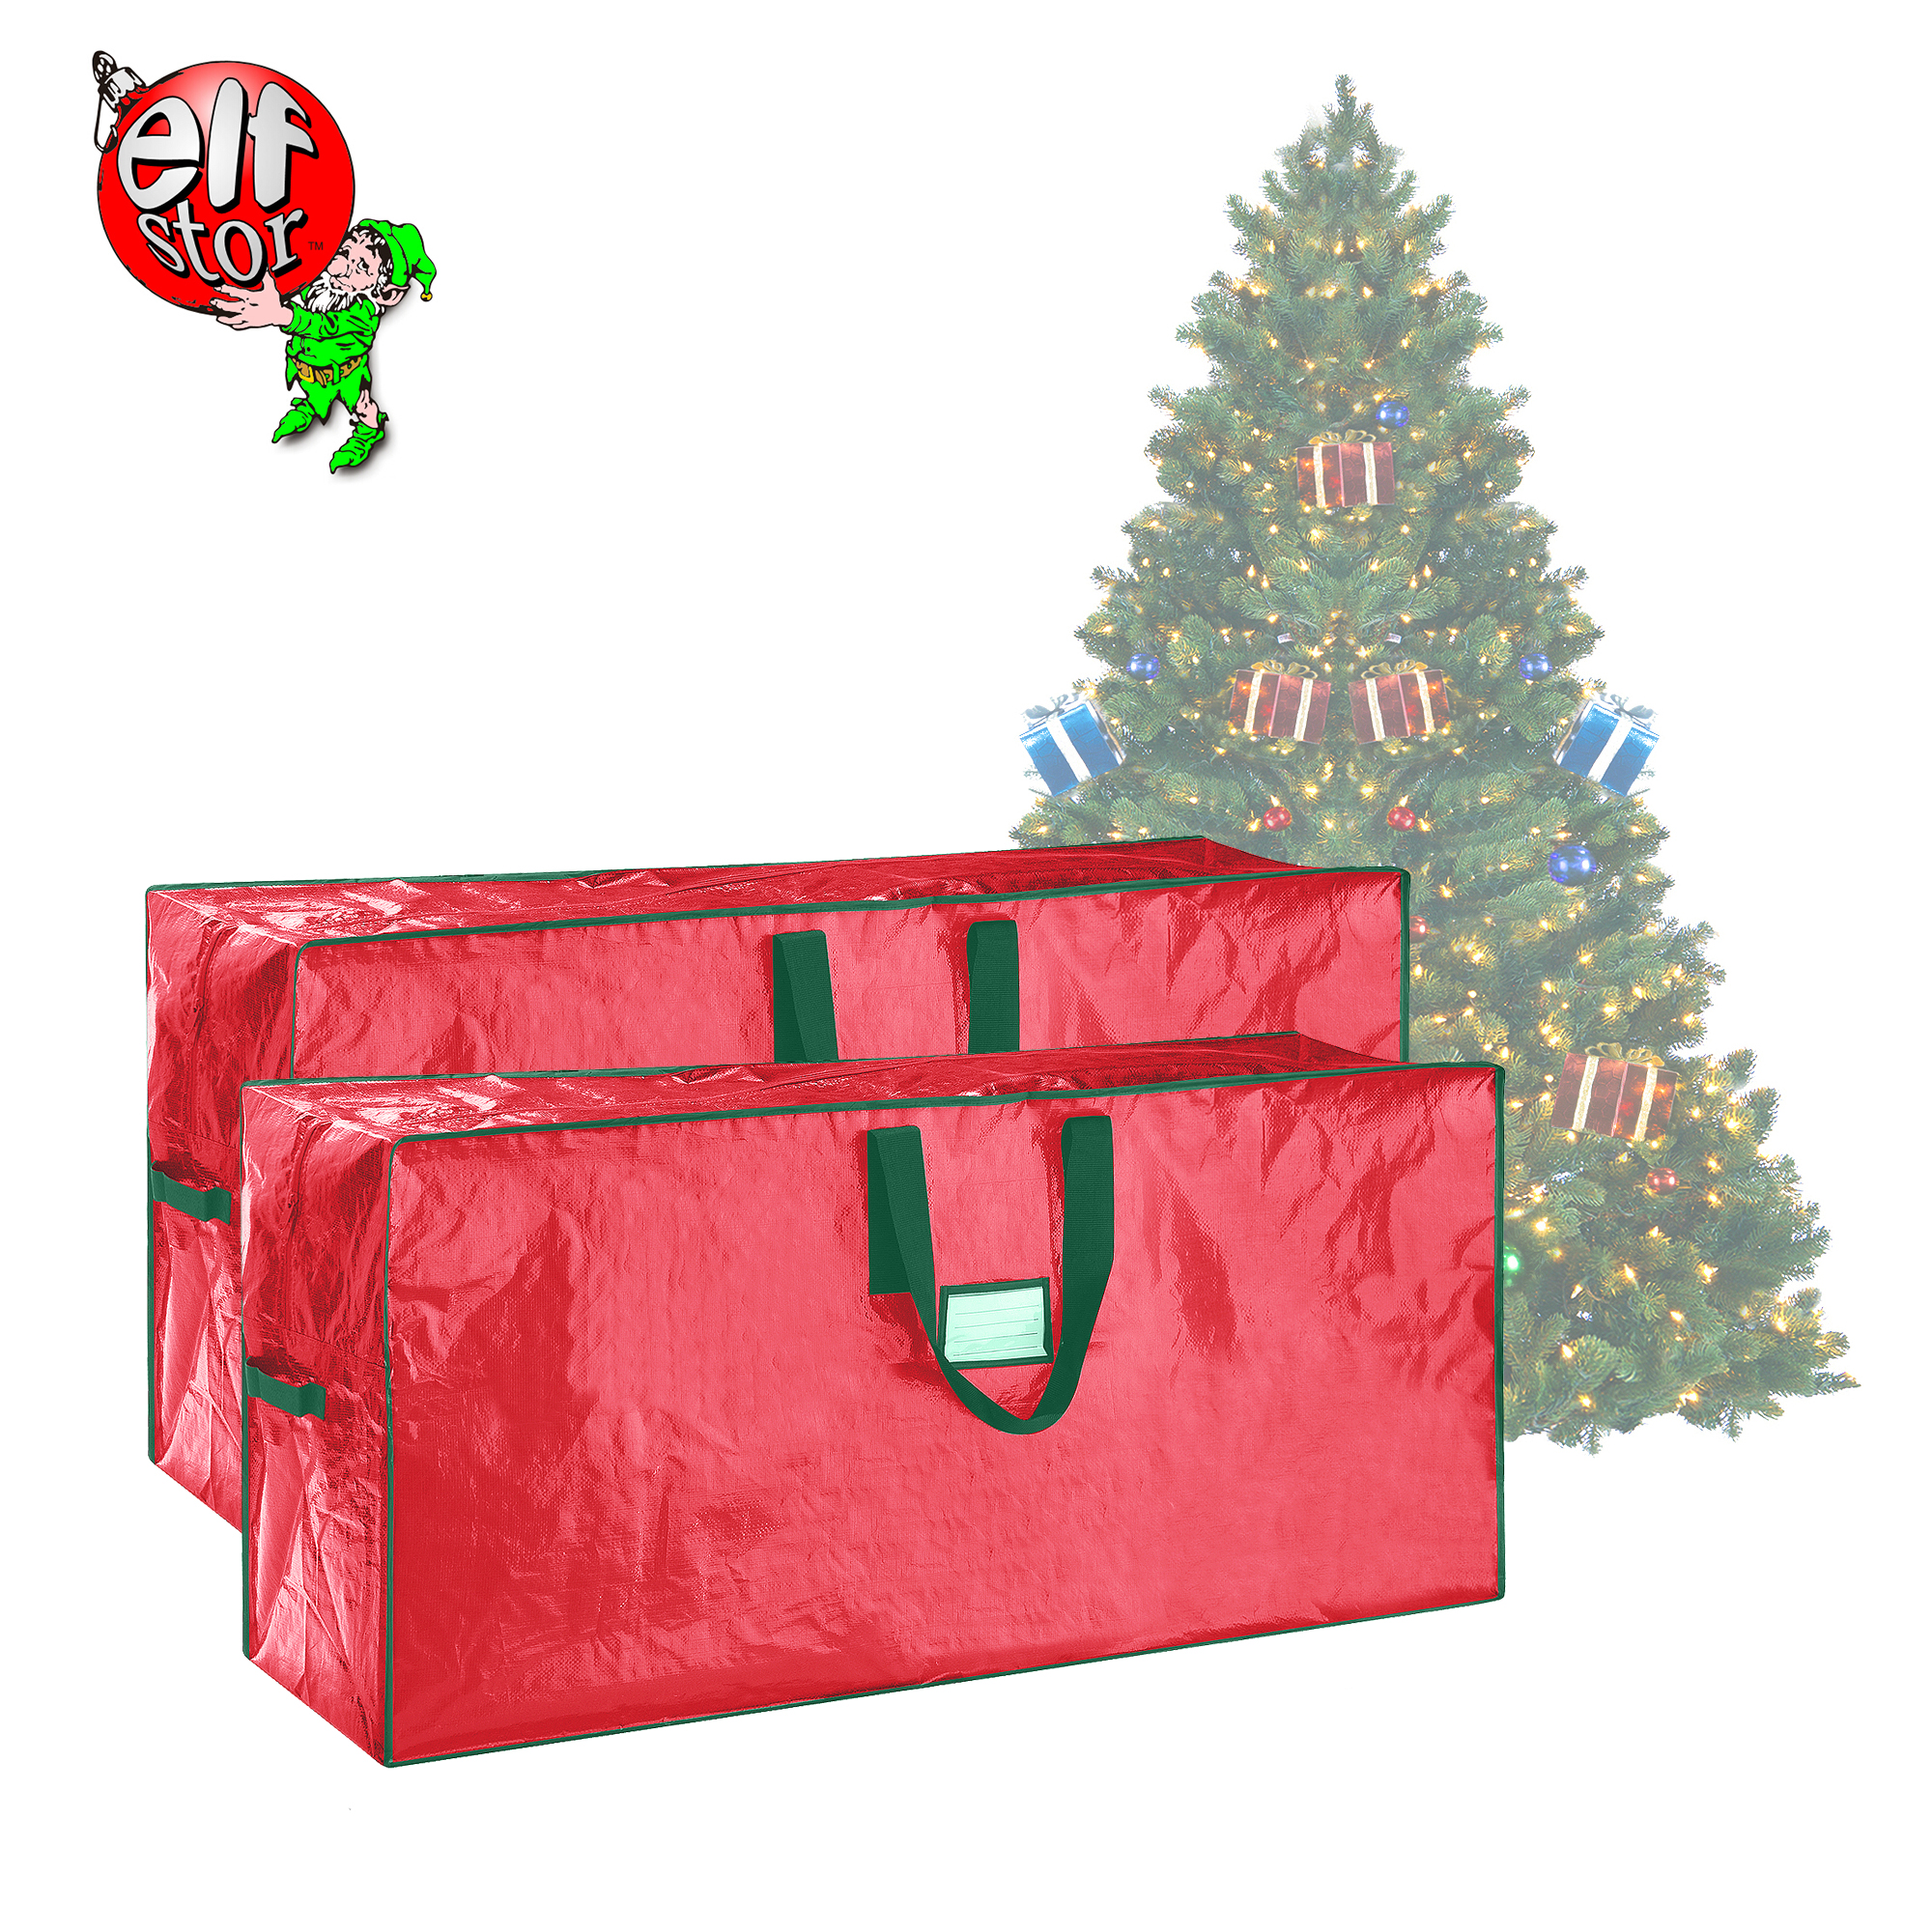 Elf Stor | Christmas Tree Bags | Large For up to 7.5 Ft Trees | 2-Pack | Red